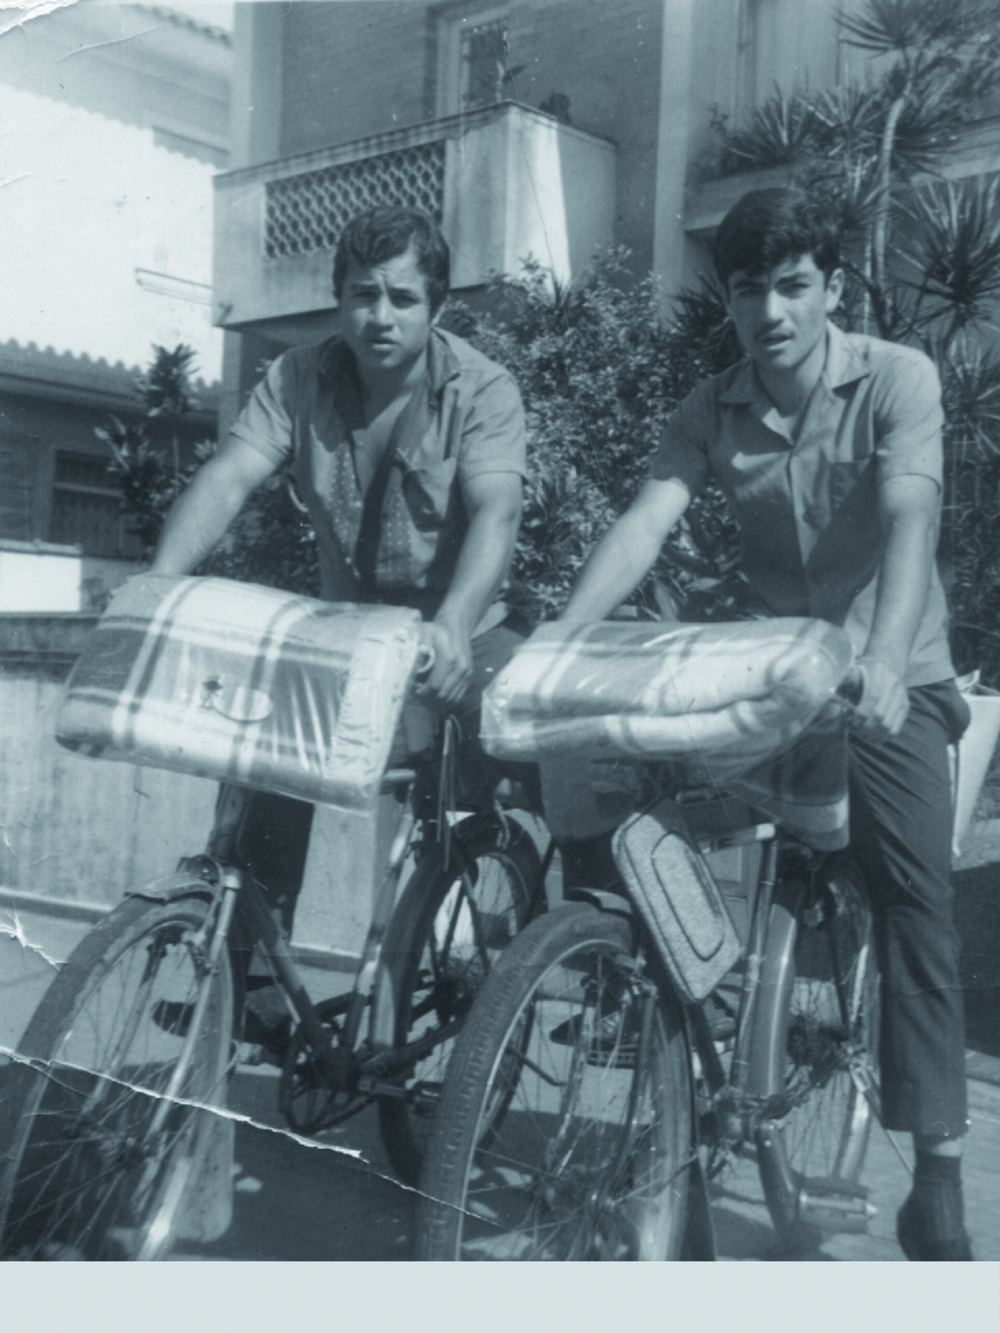 Lebanese peddlers on bicycles in Sao Paulo, Brazil 1960 LERC Archives, Roberto Khatlab Collection